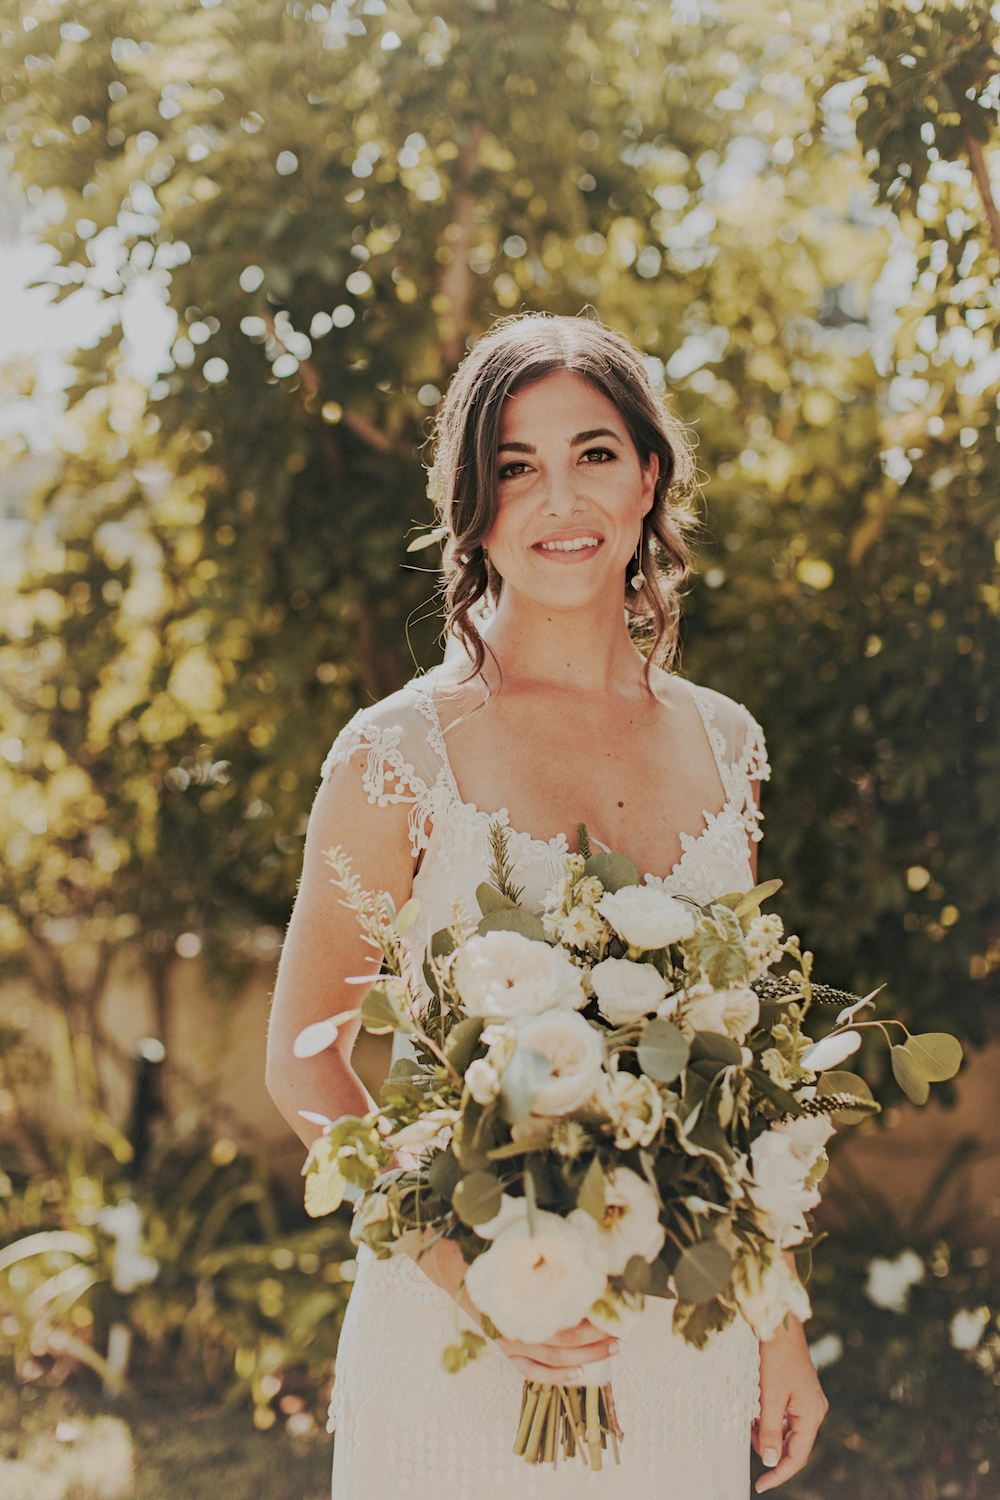 Rosemary, basil & mint bridal bouquet  by San Diego wedding florist, Compass Floral.